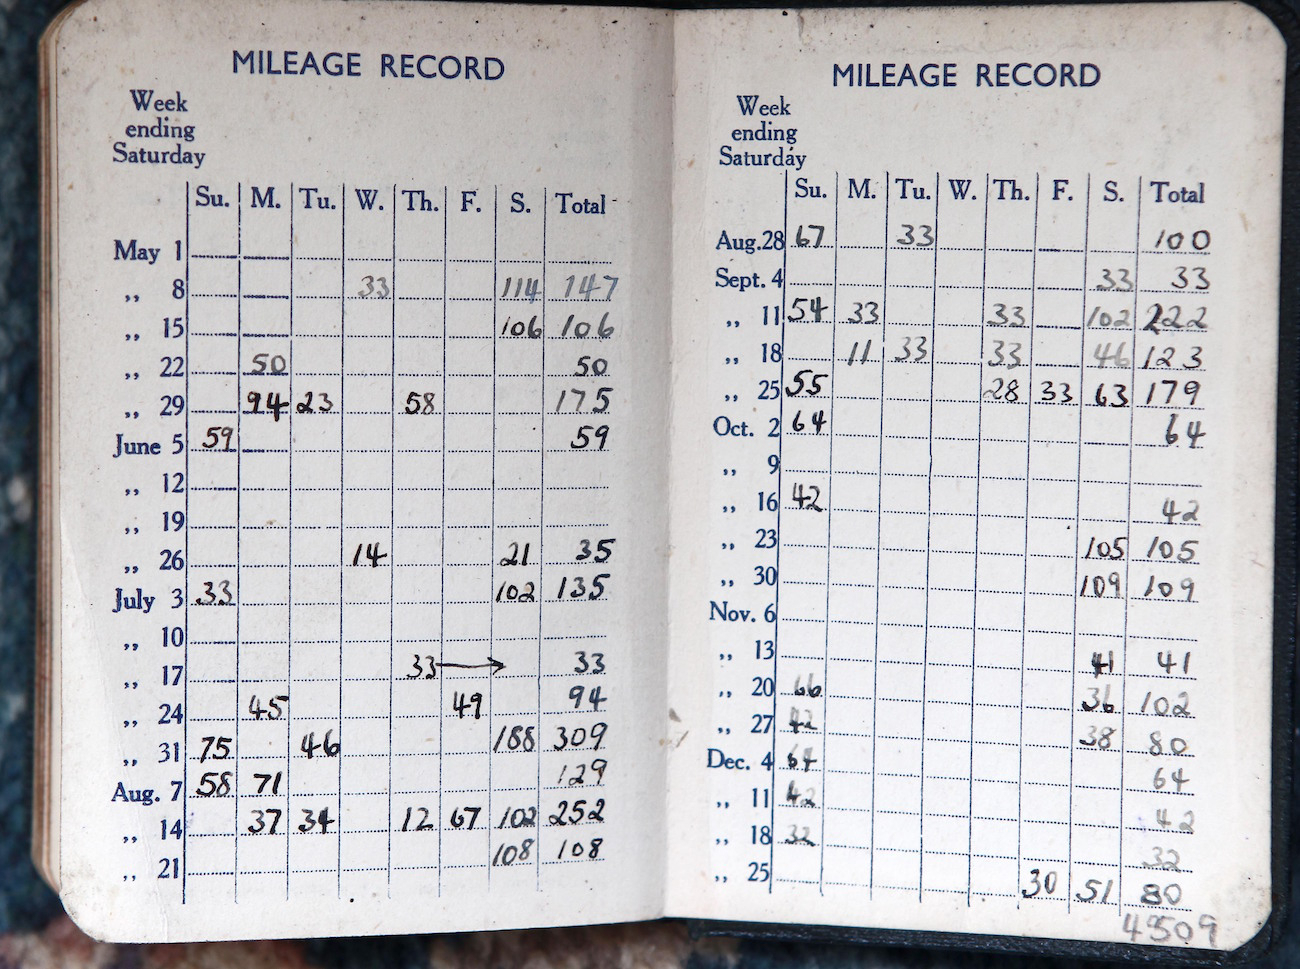 Mileage Spreadsheet For Irs With Regard To What Are The Irs Mileage Log Requirements?  Mileiq